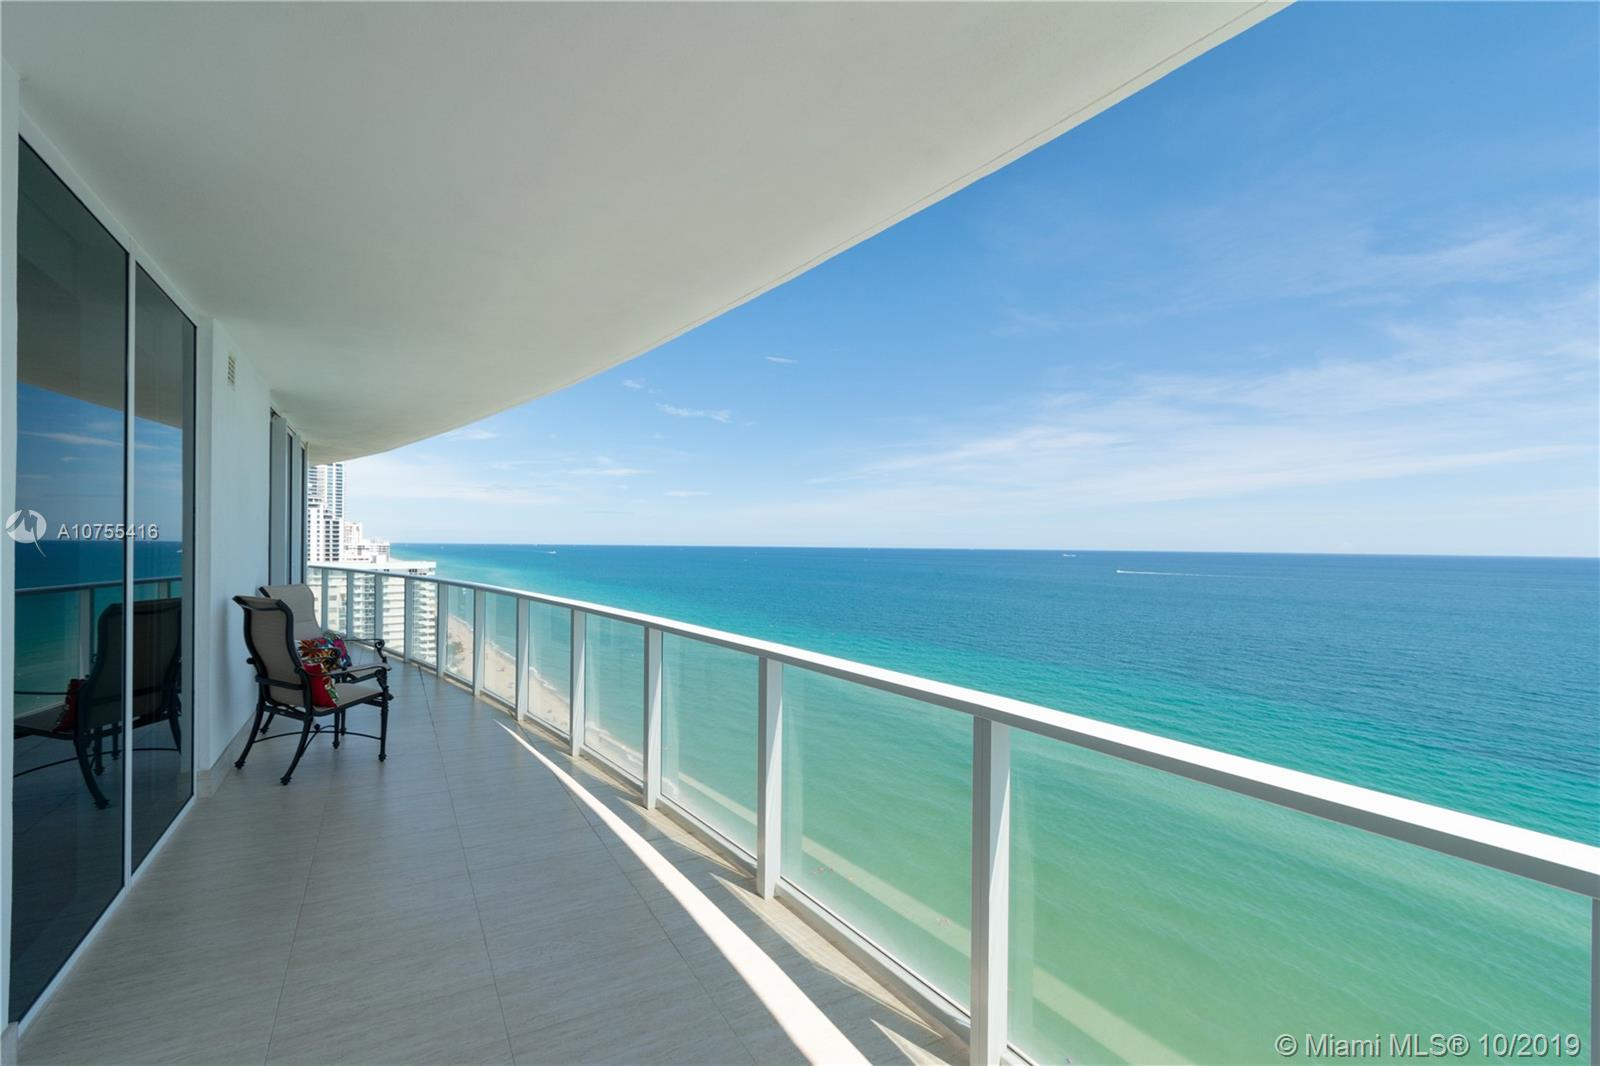 Apogee Beach Condo. Fabulous Boutique Building of only 49 units. This sophisticated 19th-floor oceanfront corner apartment features four bedrooms and four and one-half baths. The 5th bedroom was left open as a den. The unit has three parking spaces and a storage room. Floor-to ceiling energy efficient impact resistant sliding glass doors and windows throughout allow spectacular unobstructed ocean views.This home offers wide open interior spaces, a gourmet kitchen with top-of-the-line appliances, a wet bar, walk-in closets, a laundry room and marble & wood floors. Amenities include direct private beach access, a fitness room, a heated pool, a clubhouse, a sauna, a children's lounge and a billiard room. Full service building with lobby attendant and valet parking.